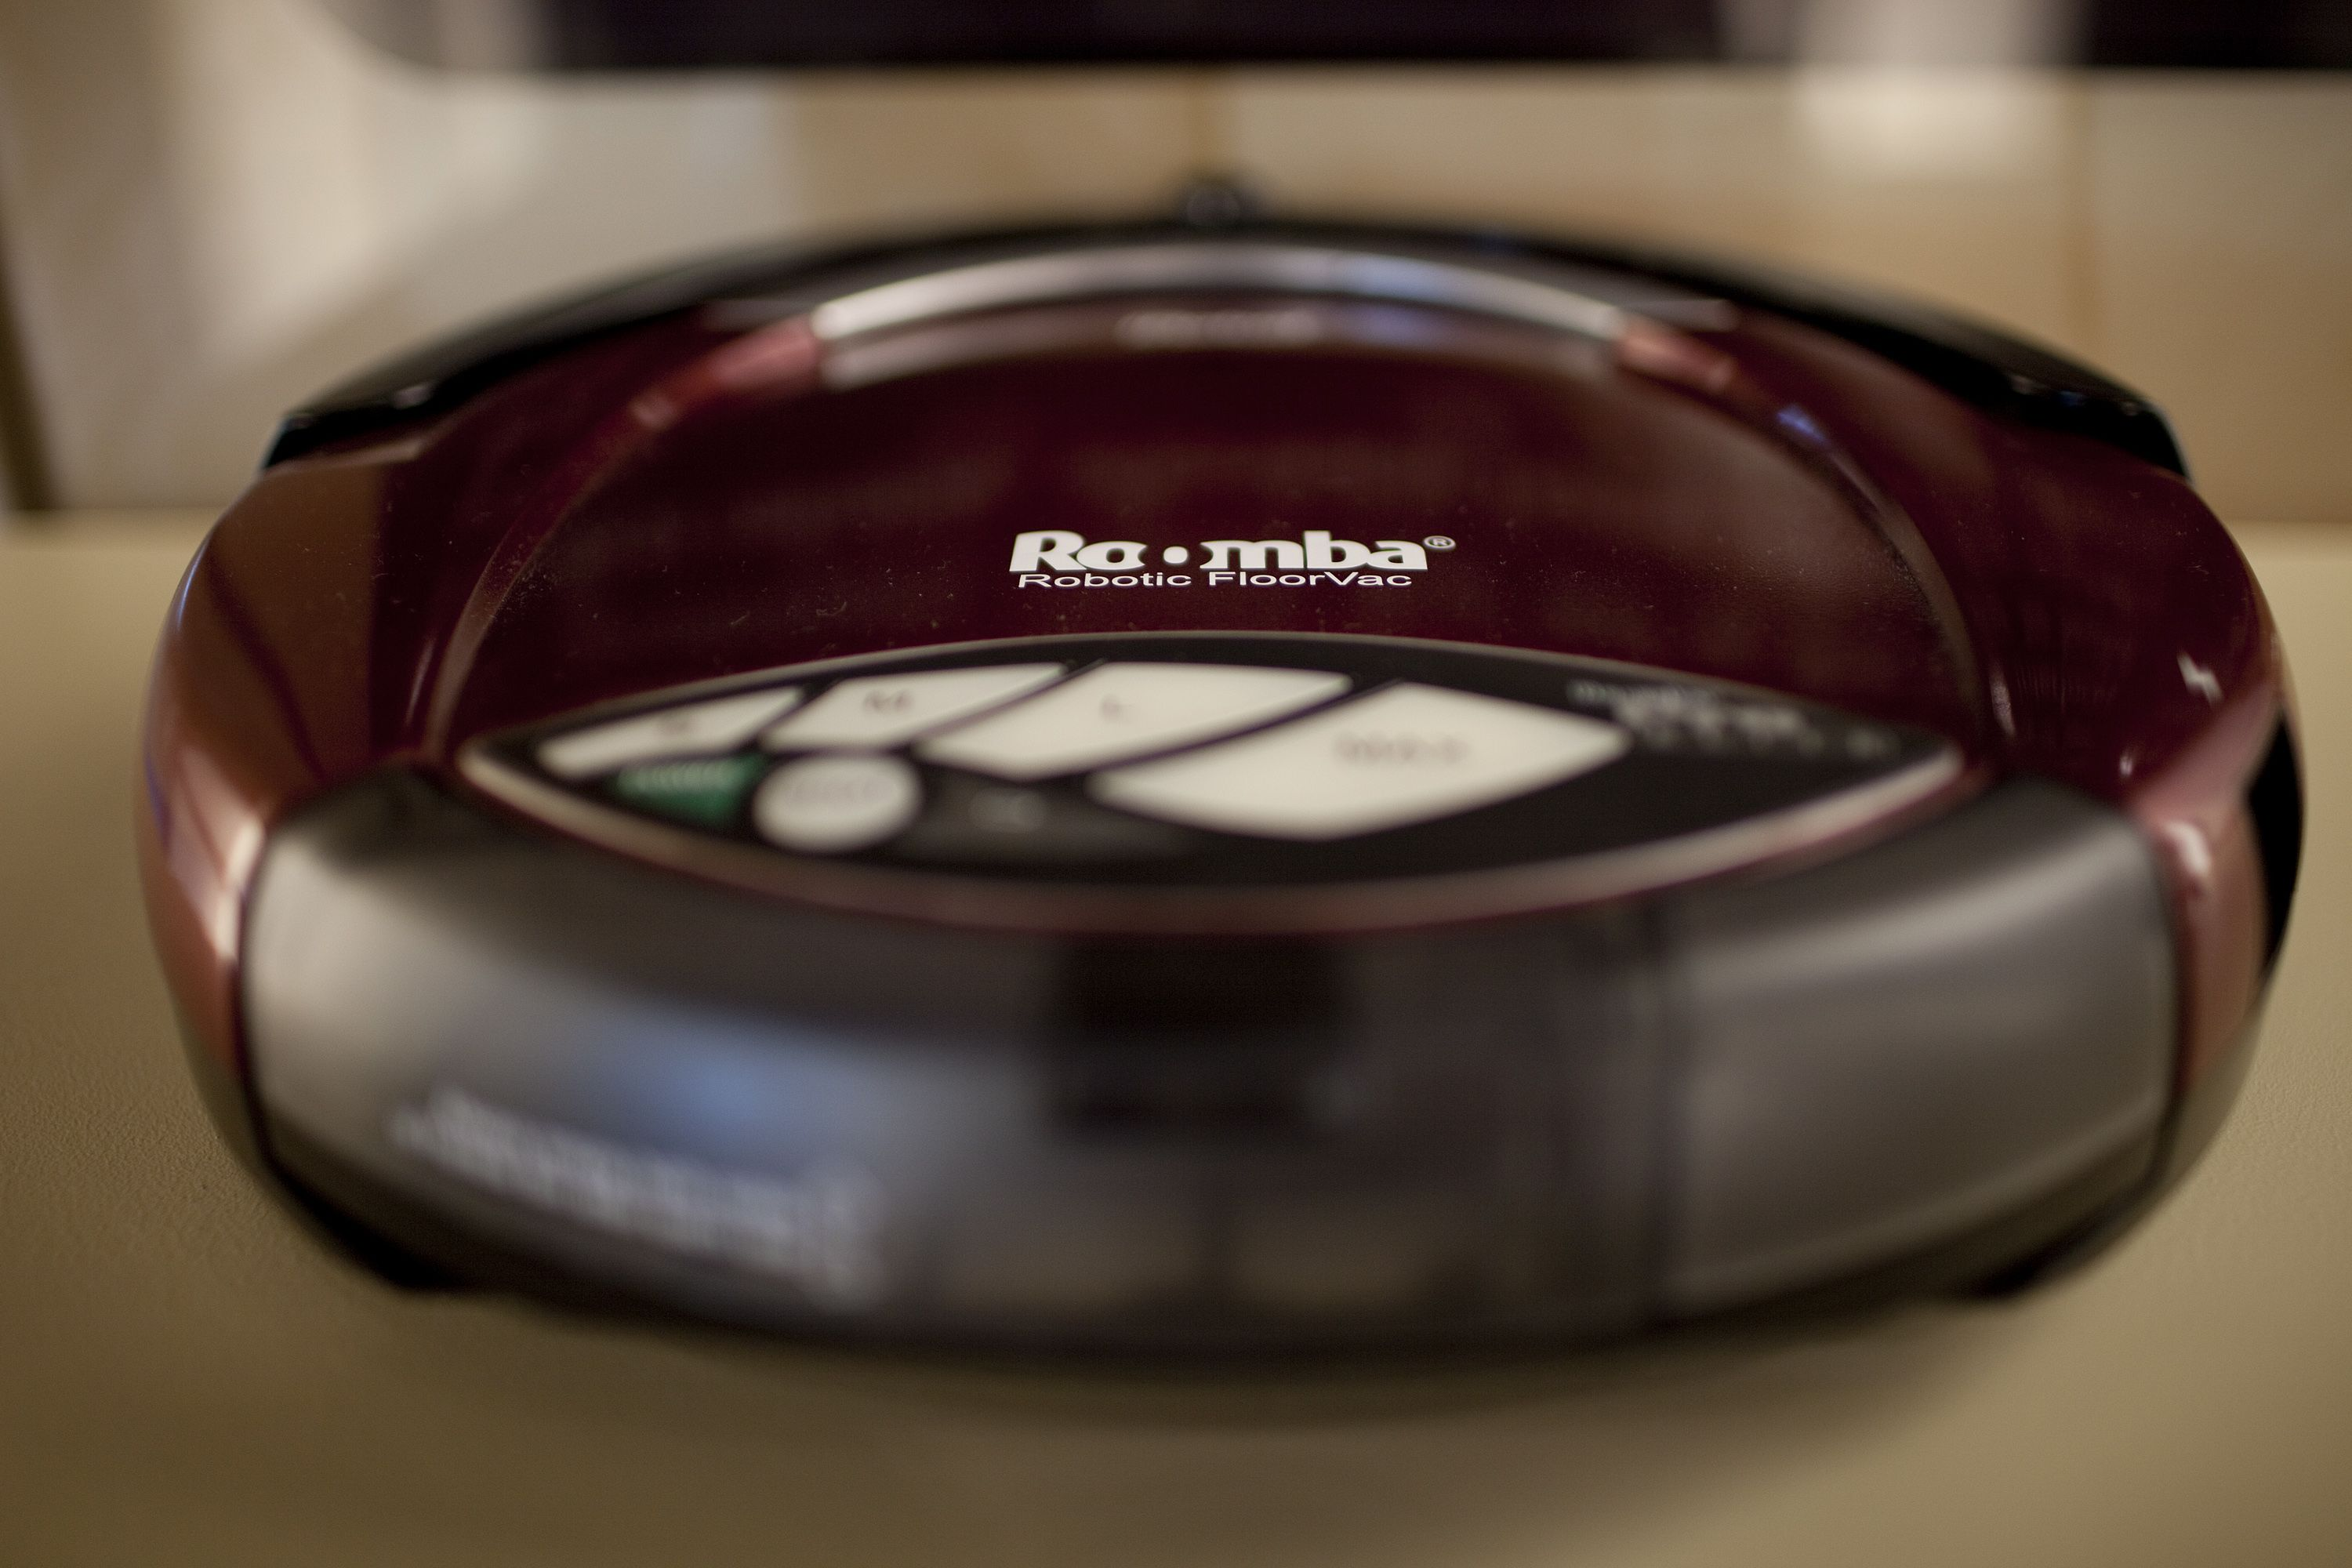 The trade war is killing the maker of the Roomba